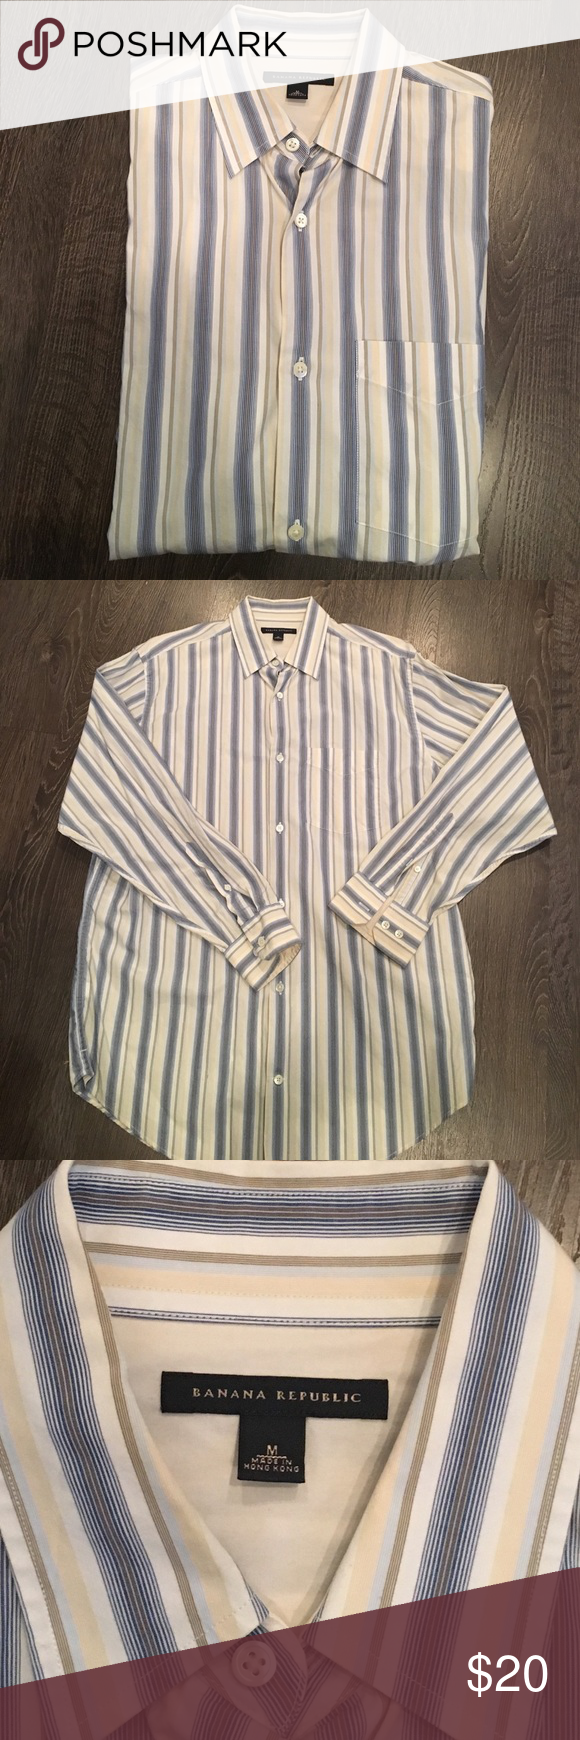 Banana Republic button down shirt Banana Republic button down shirt, EUC. Cotton fabric and blue, brown and beige stripes make it perfect for spring and summer! Machine wash warm. 🌸automatically save when you bundle or make an offer🌸 Banana Republic Shirts Dress Shirts